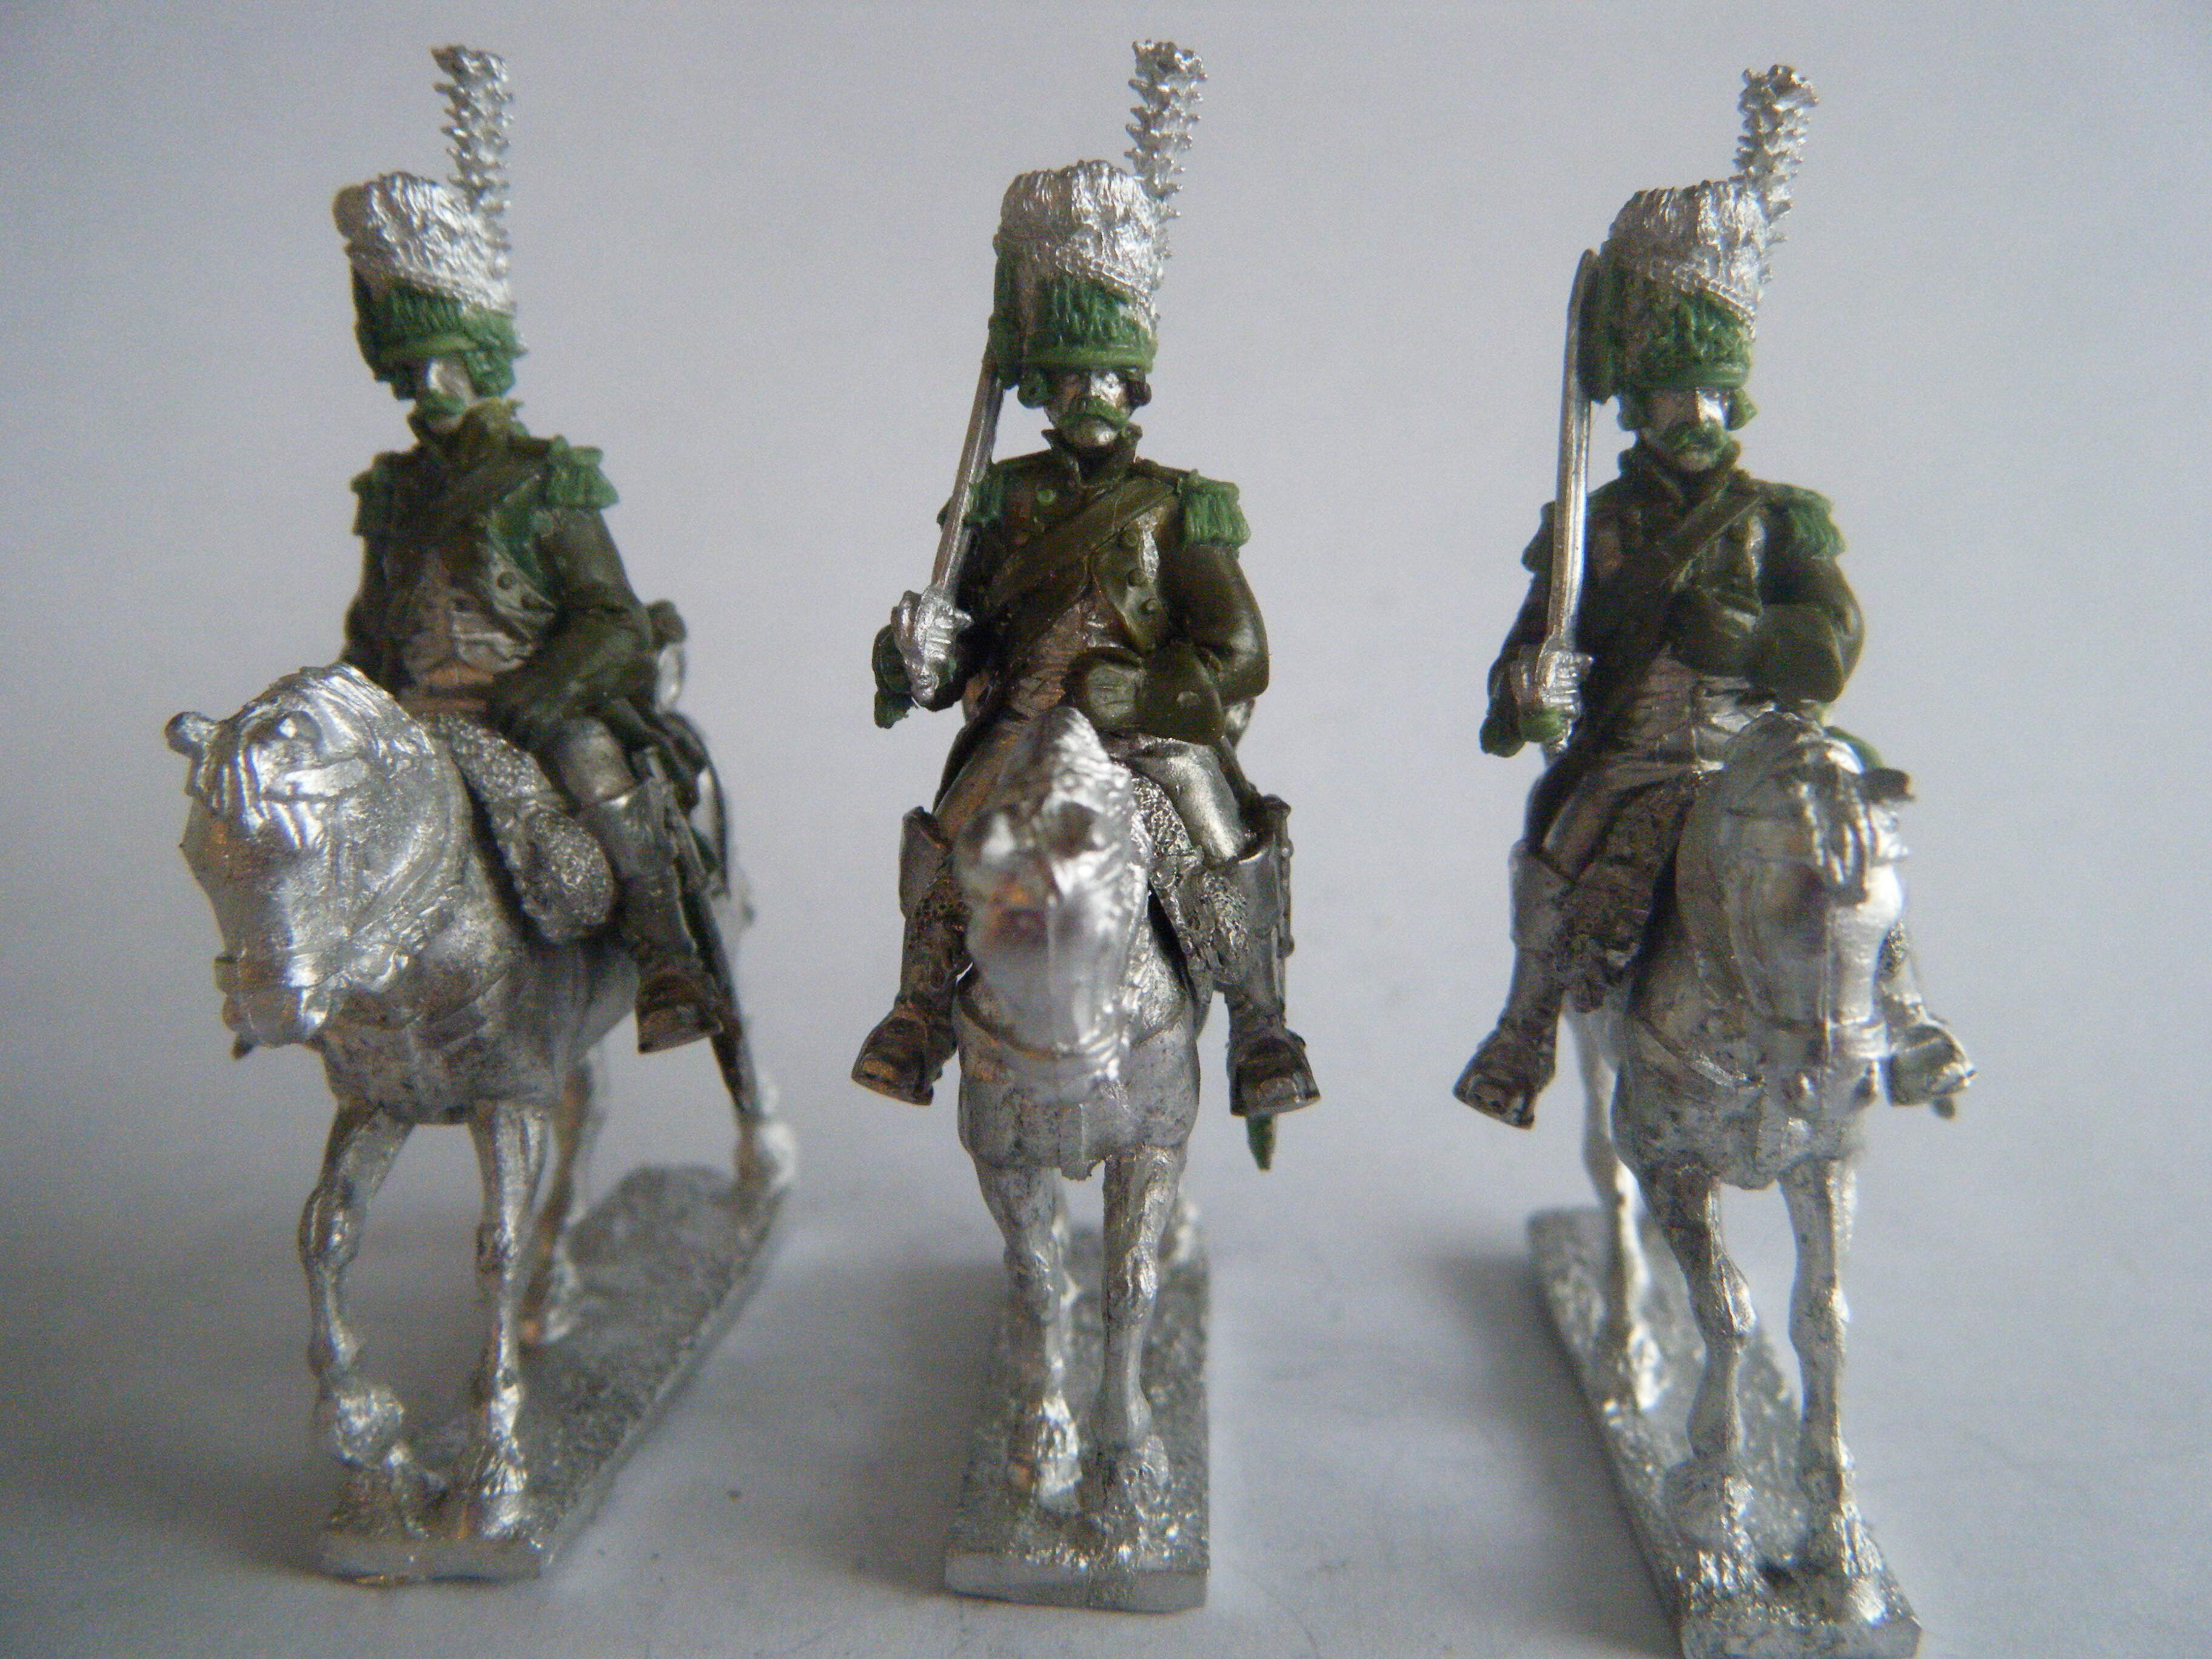 French Carabiniers preoder